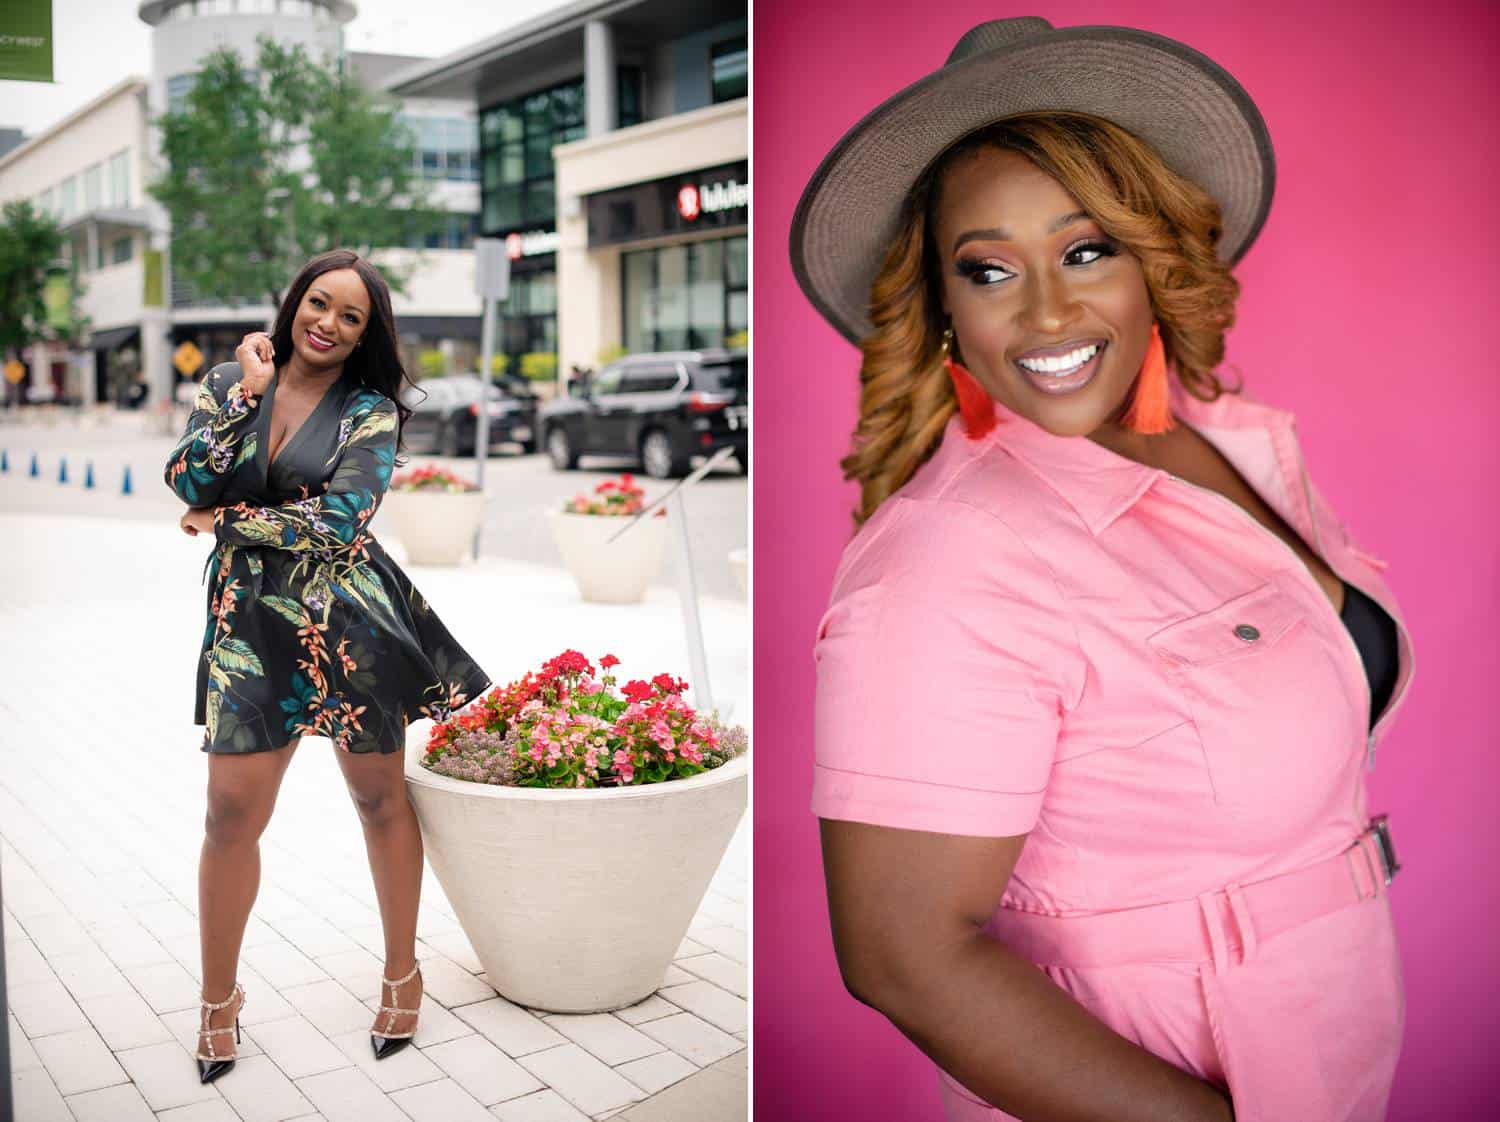 Two side-by-side photos depict professional Black women posing for their branding photos. On the left, a woman poses beside a large planter wearing a floral minidress. On the right, a woman with dark blonde hair and a gray hat poses before a hot pink studio backdrop wearing a bright pink shirt.